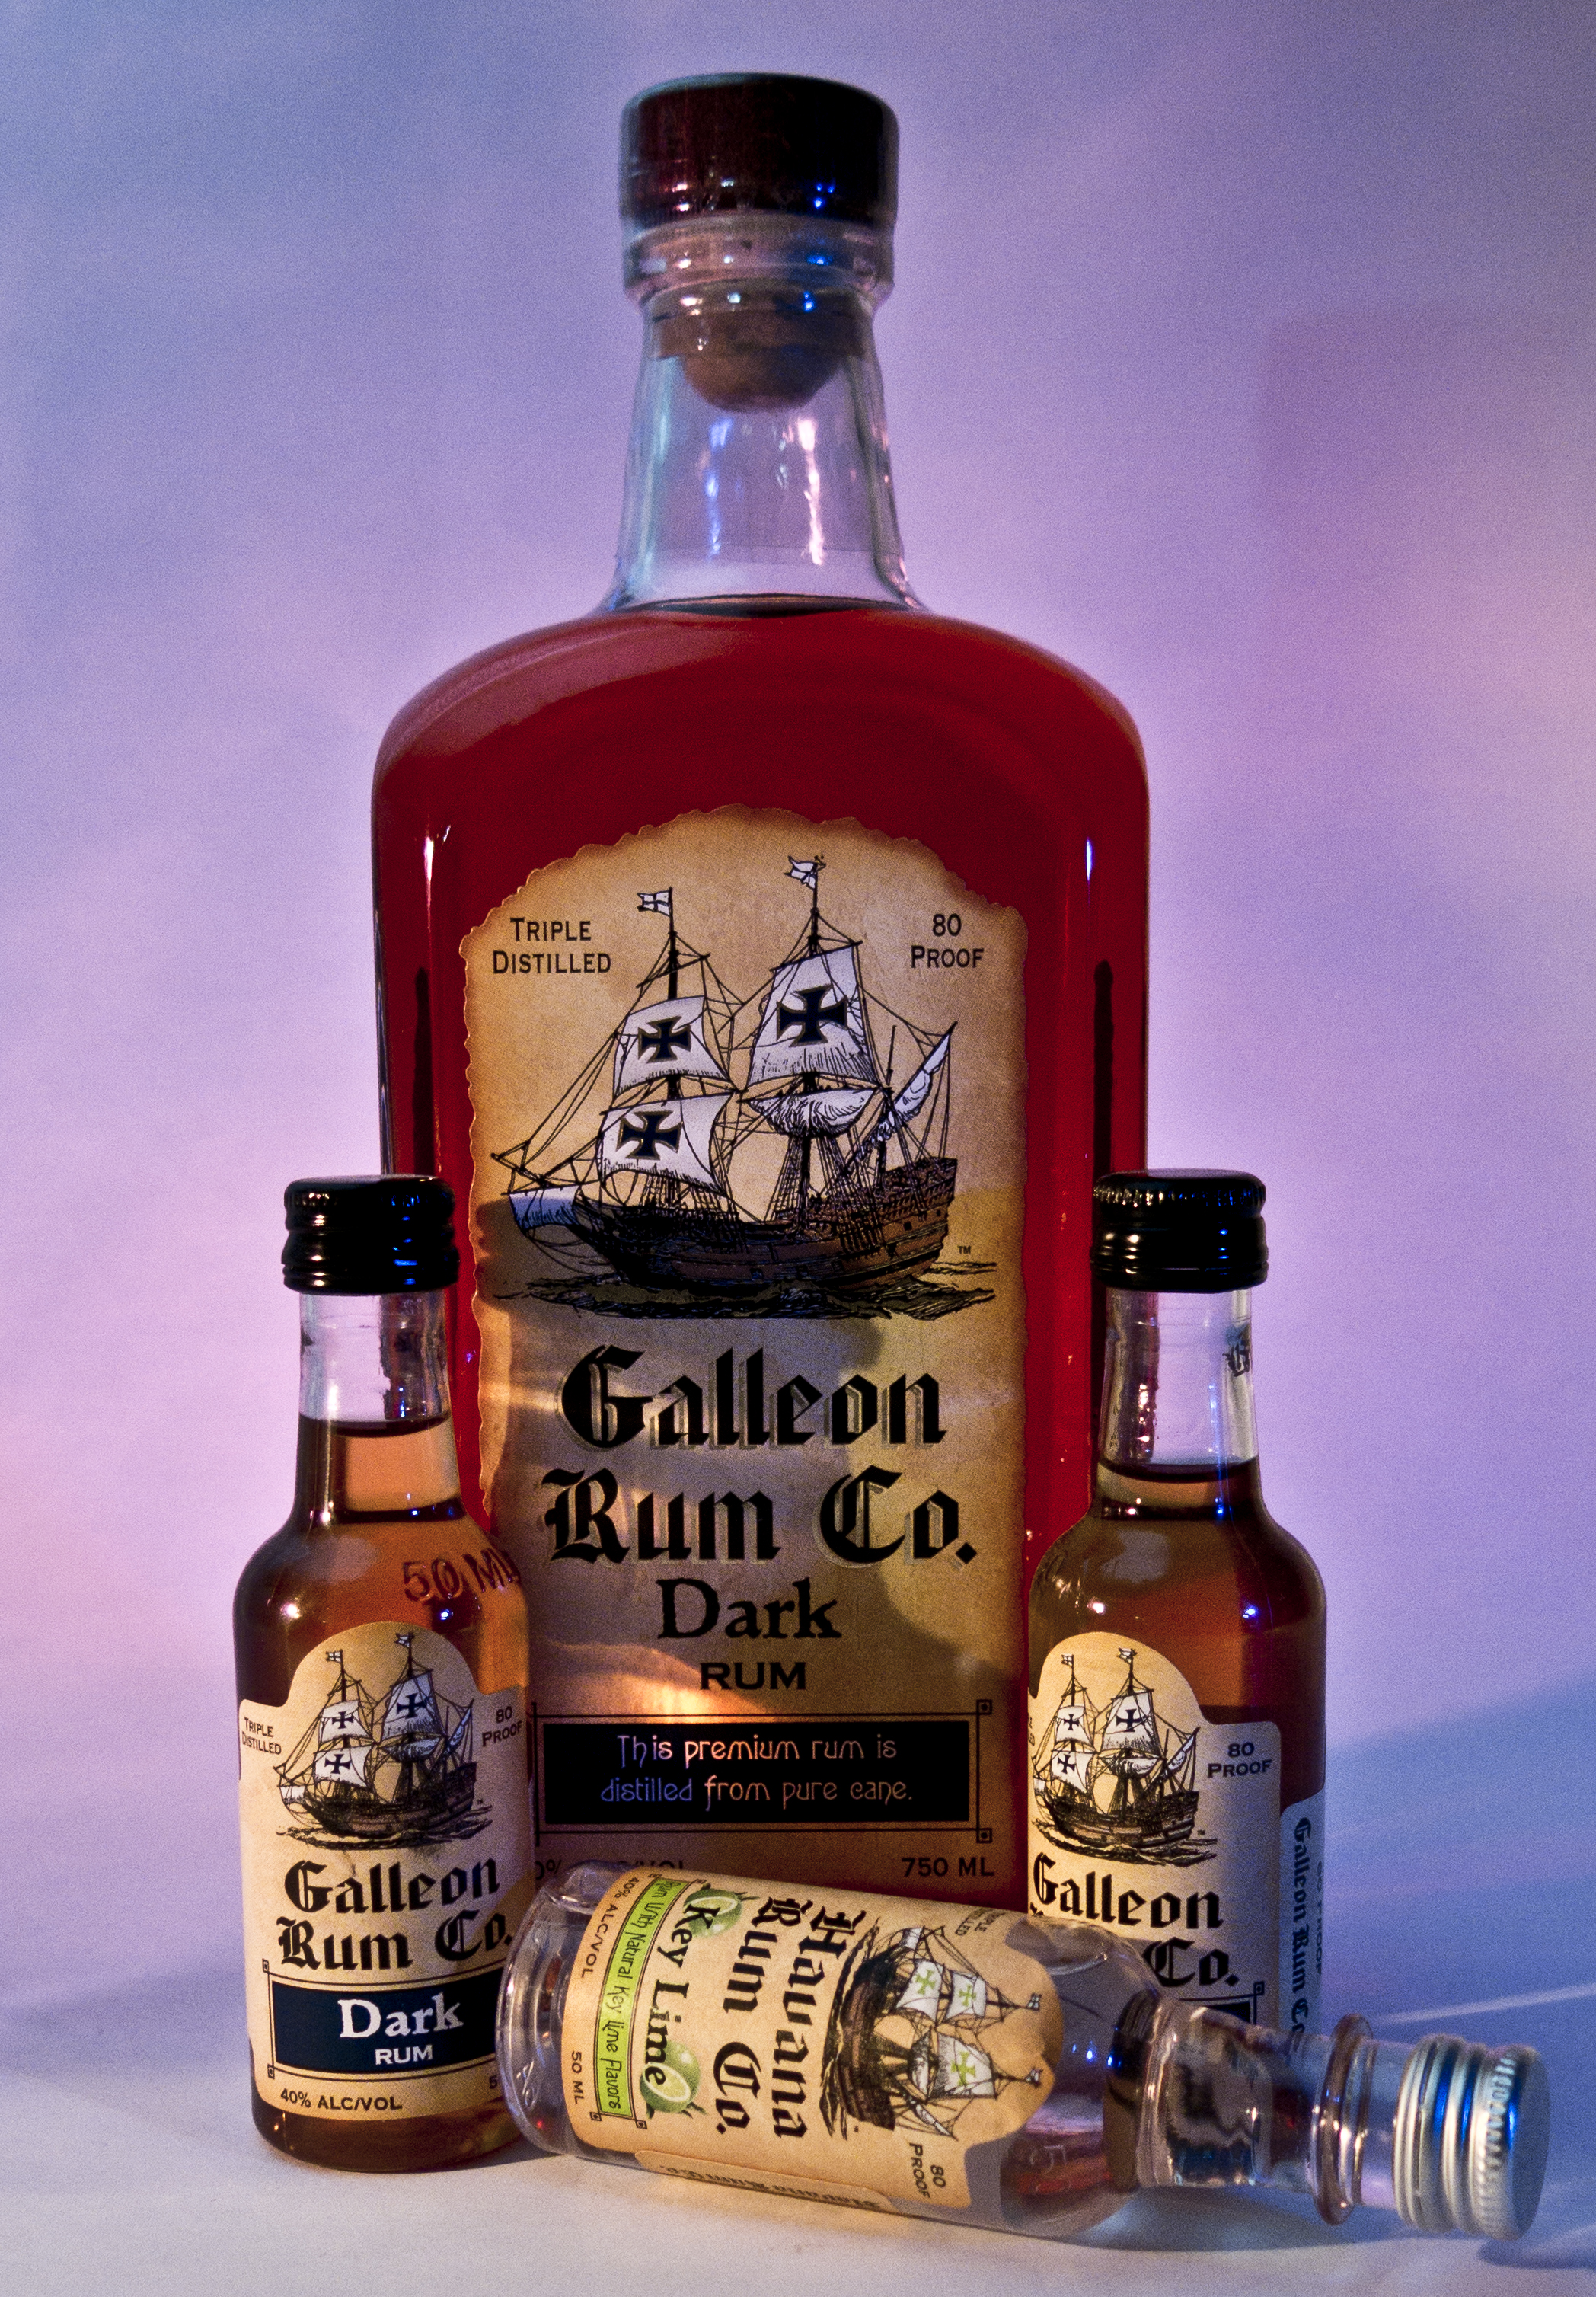 Galleon Rum Co All bottles